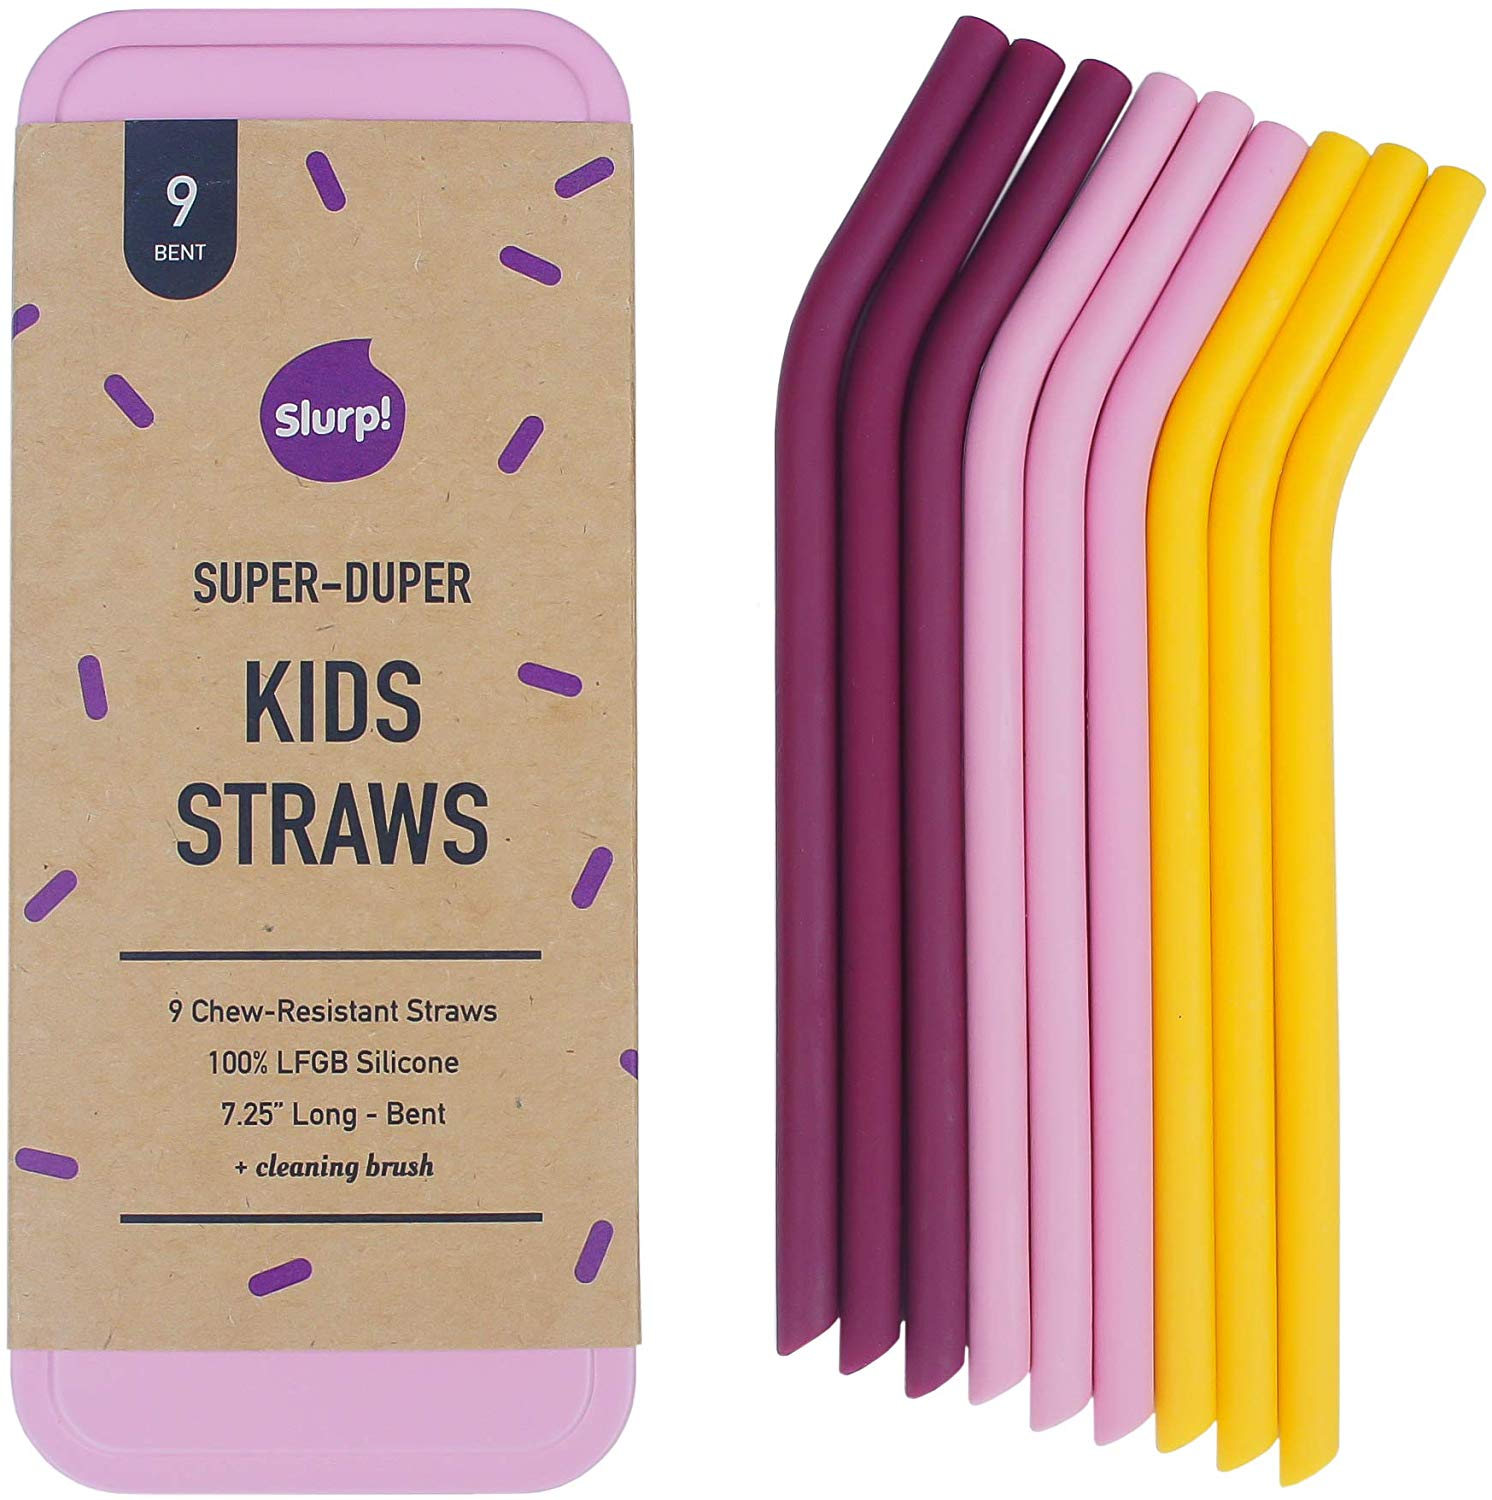 Kids Slurp Straw 9 Pack and Cleaning Brush w/Pink Case, 7.25in Bent Reusable Silicone Drinking Straws for Small Glasses and Cups - Eco-Friendly Food Grade Silicone (Pink)